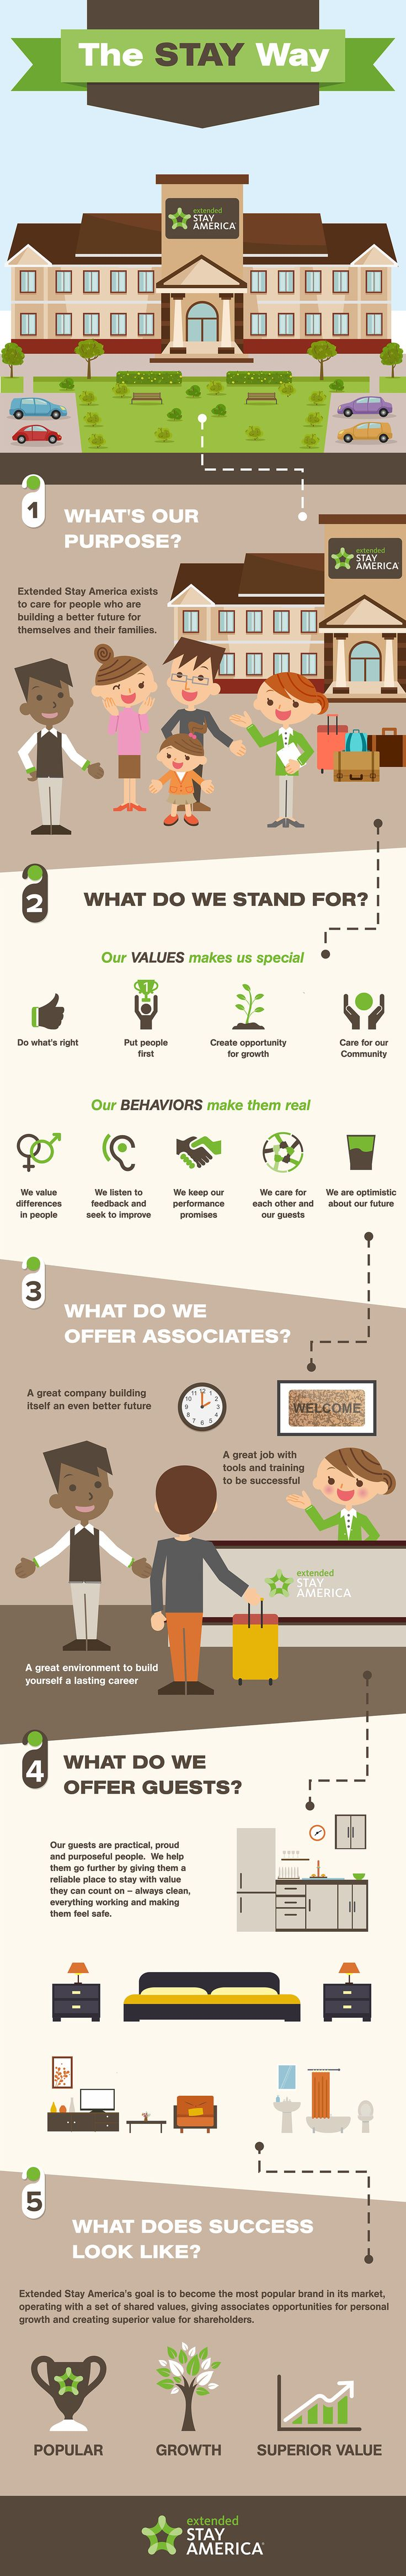 PS_Designs - The Stay Way Infographic